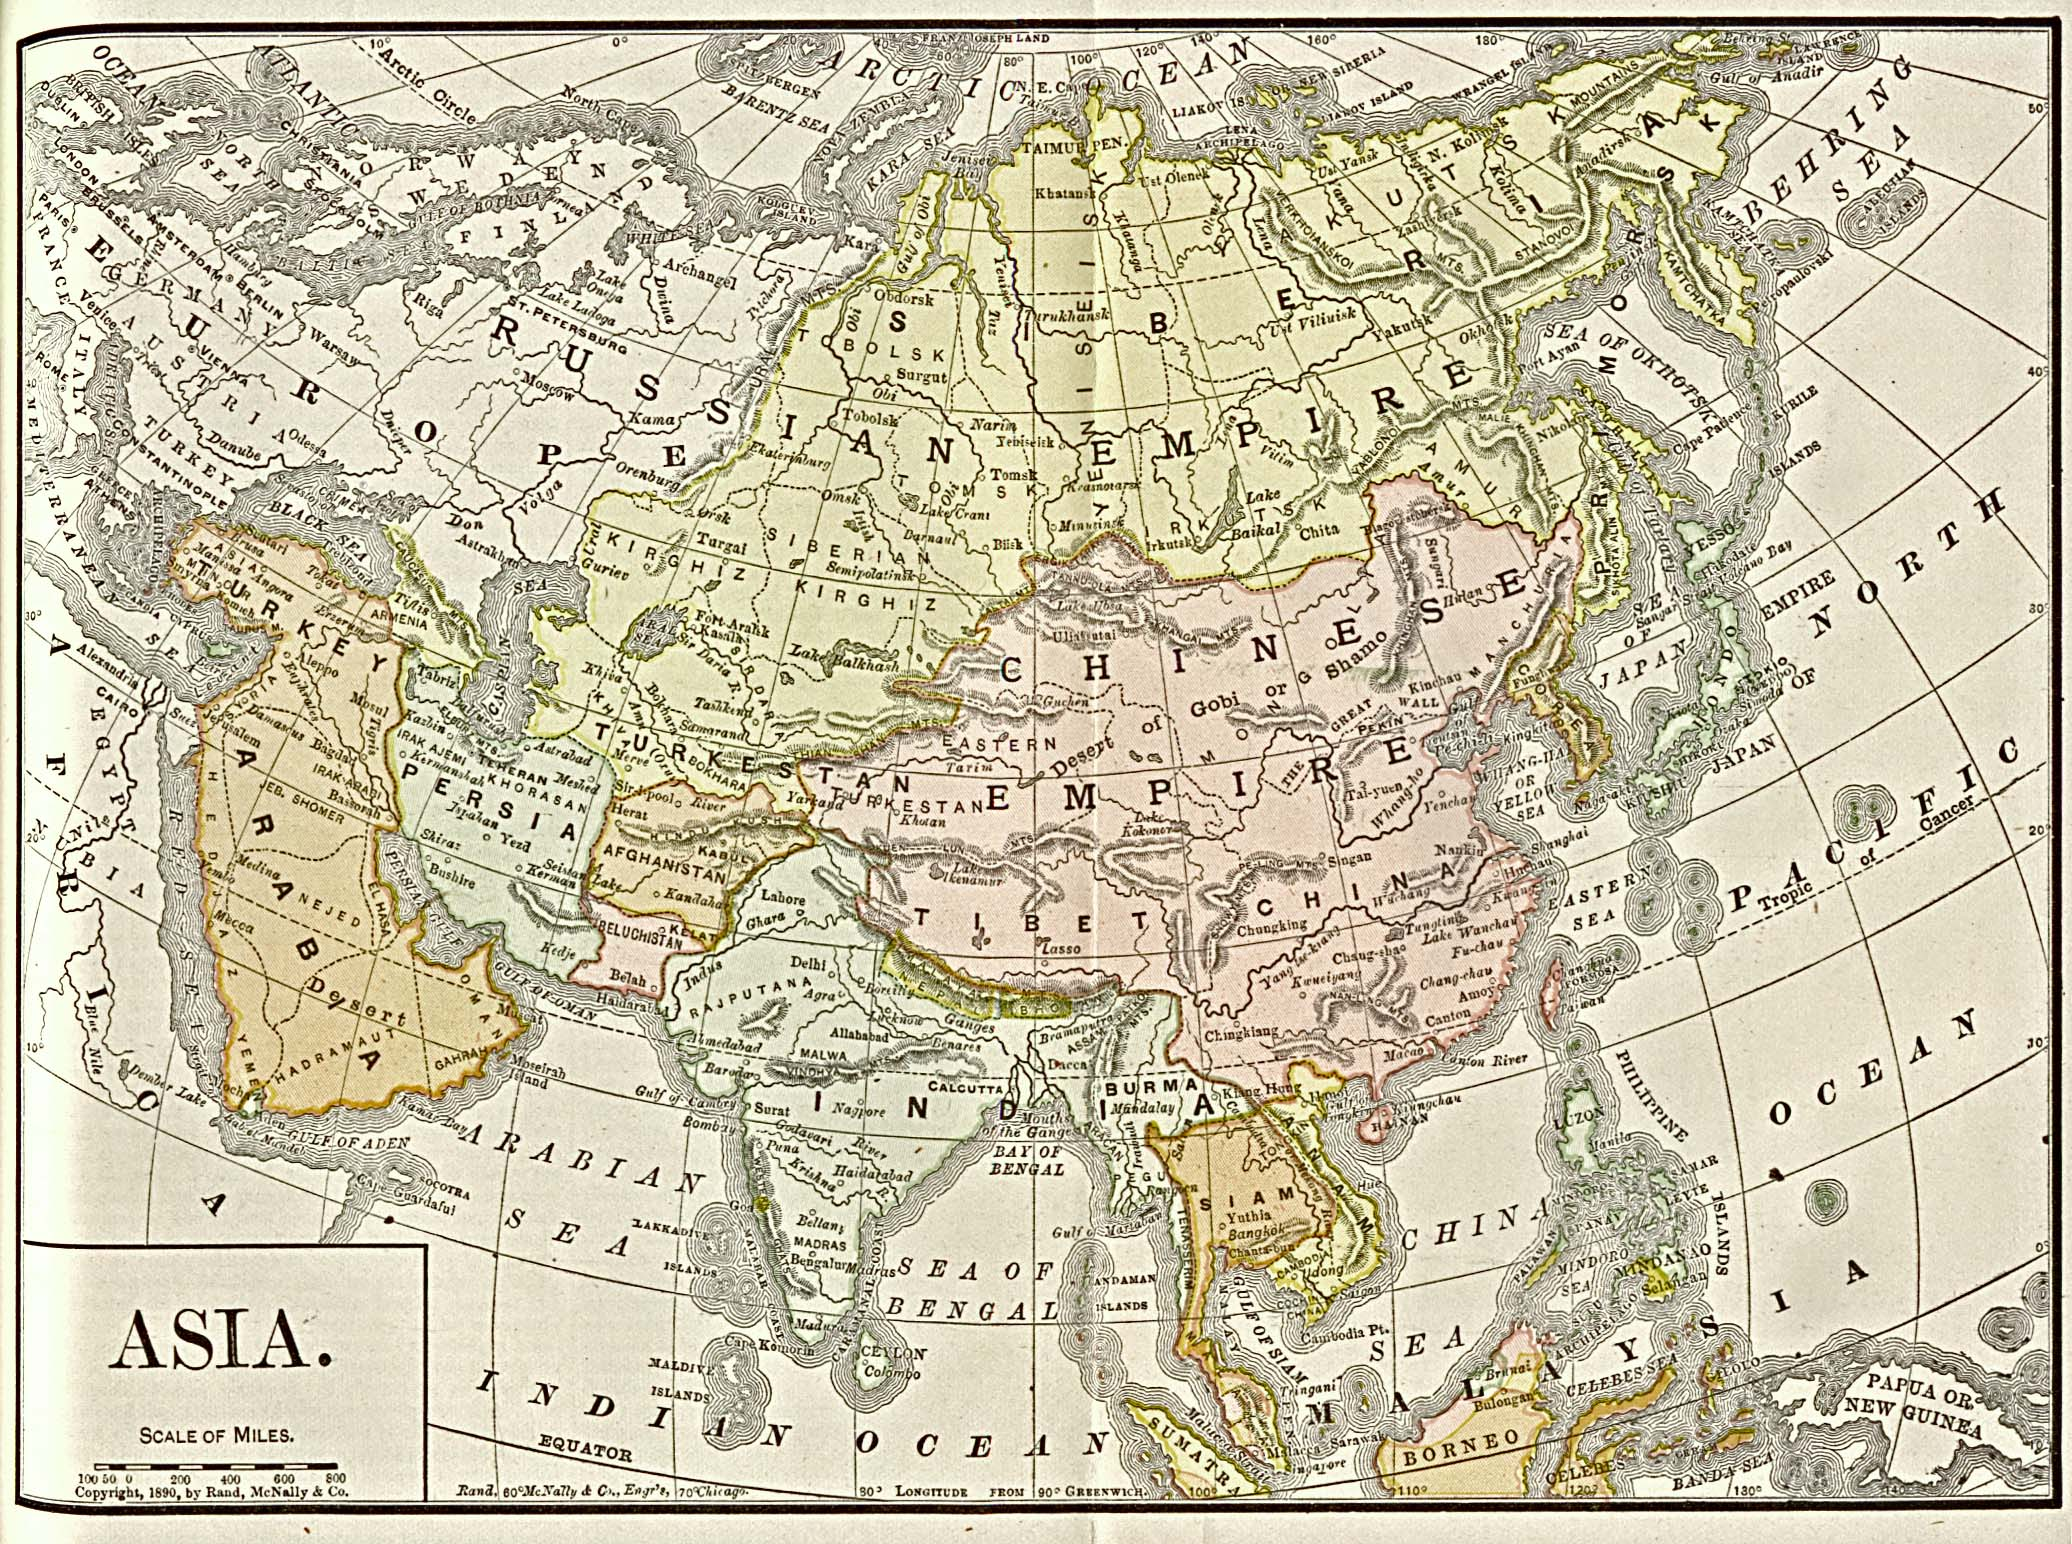 """Asia"" from Americanized Encyclopaedia Britannica, Vol.1, Chicago 1892. Courtesy of the University of Texas Libraries, The University of Texas at Austin."